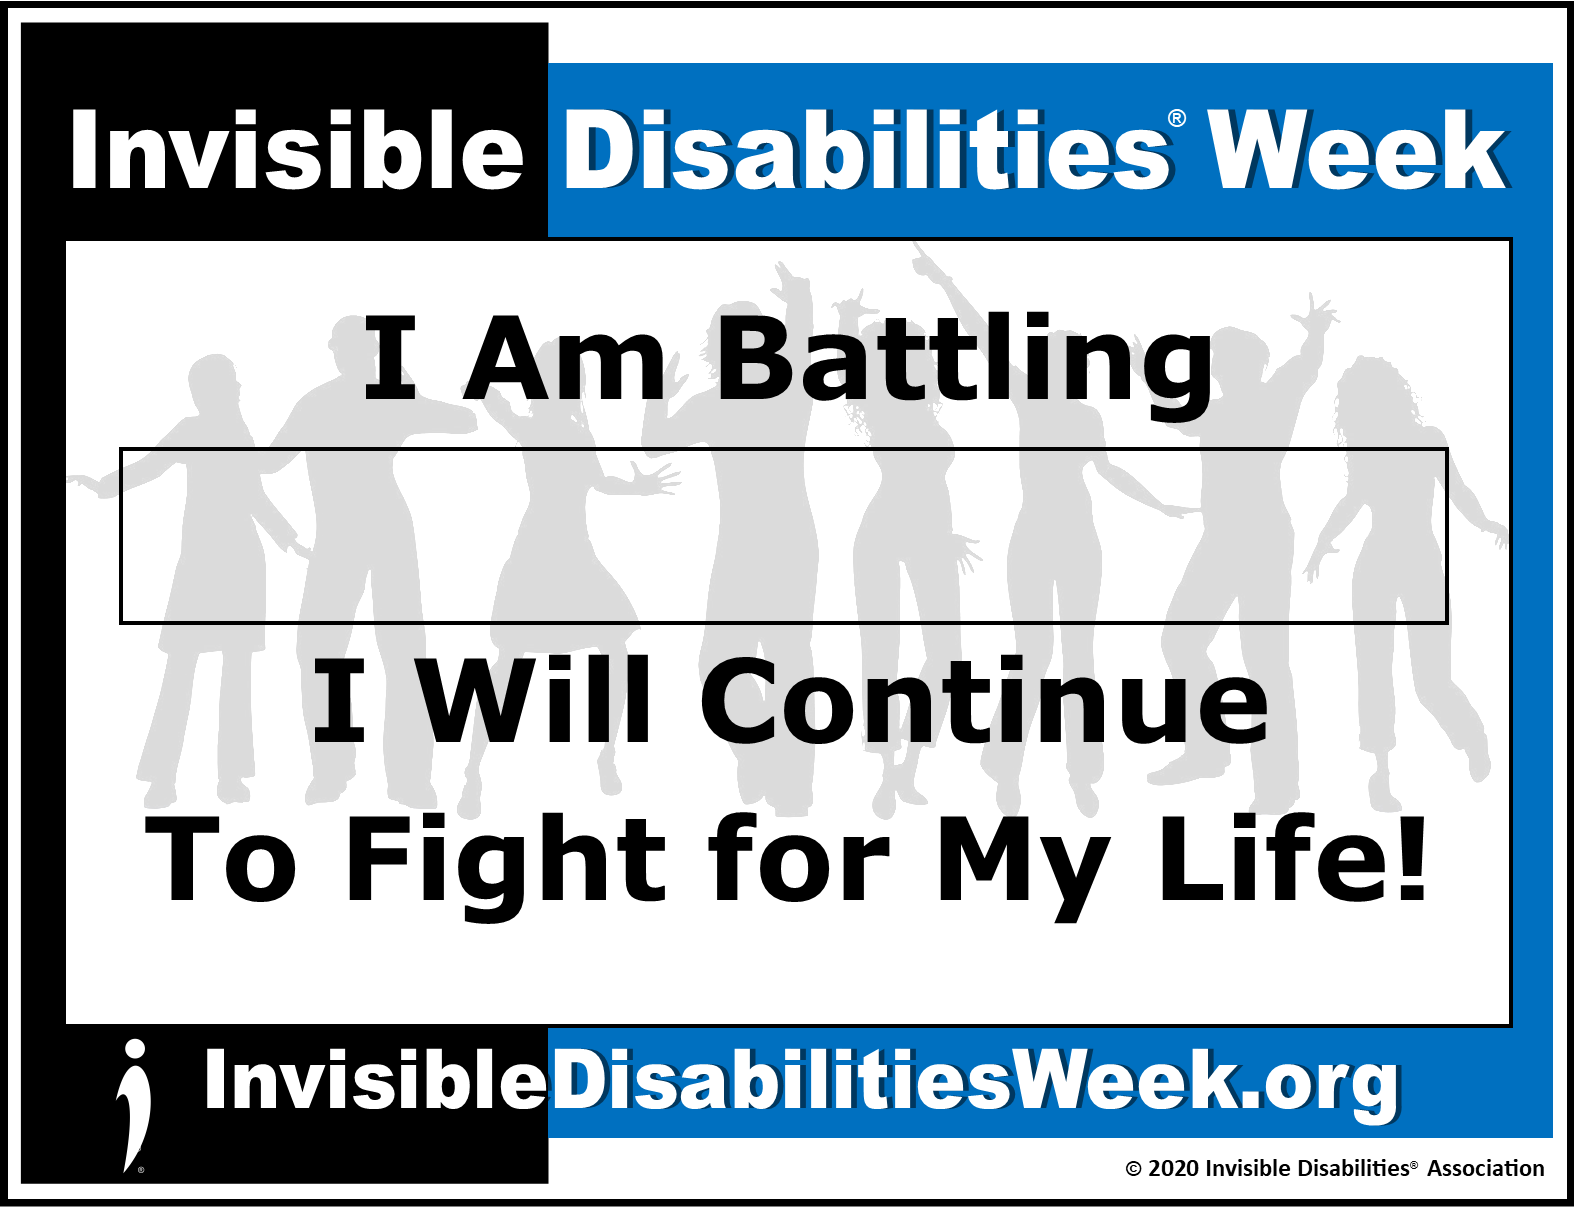 2020 Invisible Disabilities Week Banner Fight for Life - Invisible Disabilities Association